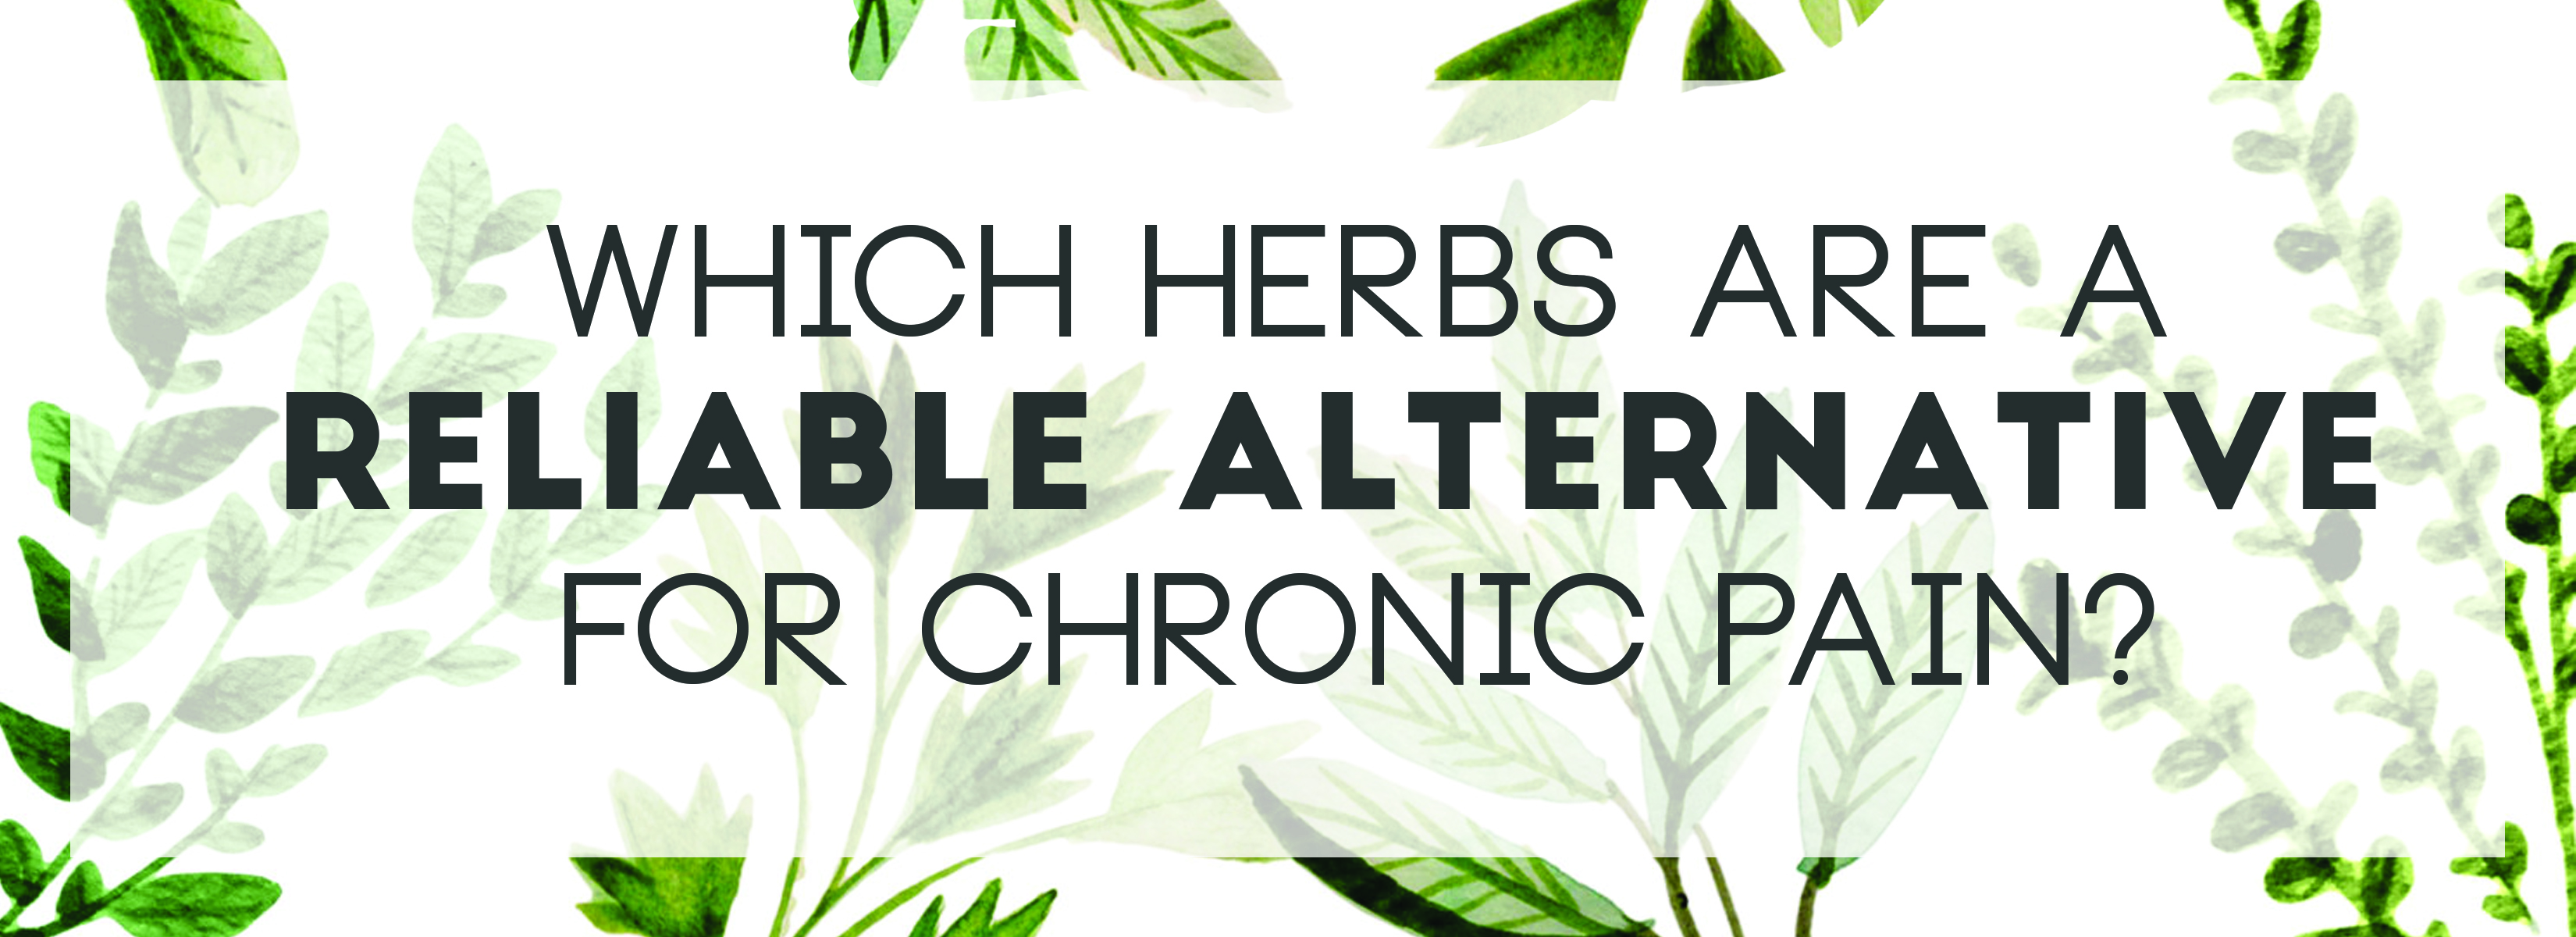 Which Herbs Are A Reliable Alternative For Chronic Pain Highland